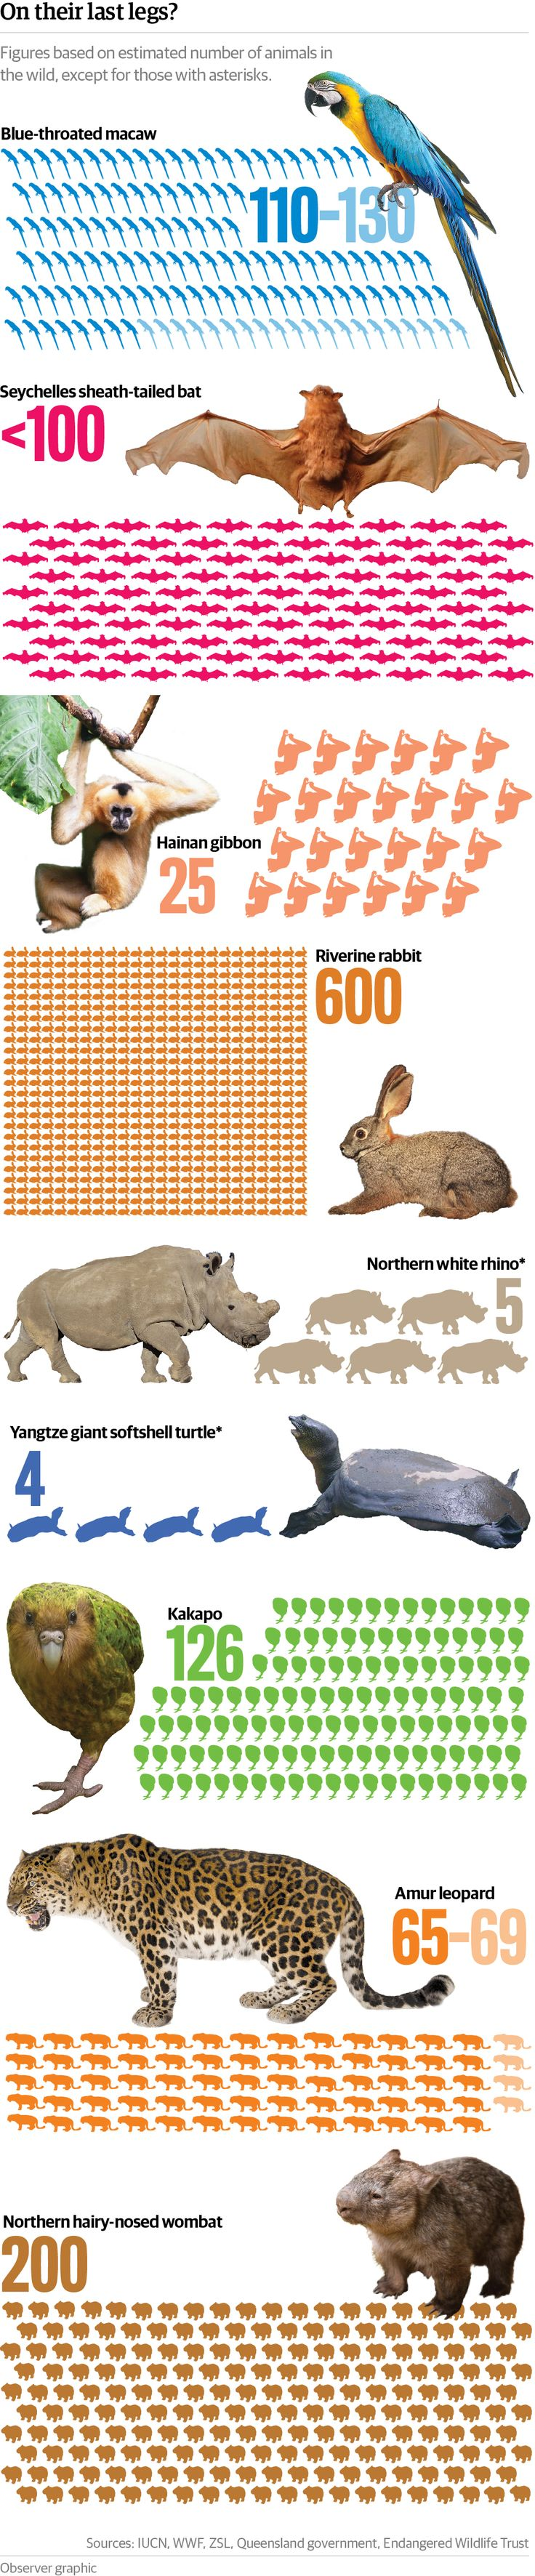 Last legs: the species with only a few remaining individuals - graphic The rate of animal extinction has rocketed in the past half-century, as hundreds - possibly thousands - of species disappear each year. Our graphic indicates some of the species whose numbers have dwindled to a vulnerable few.